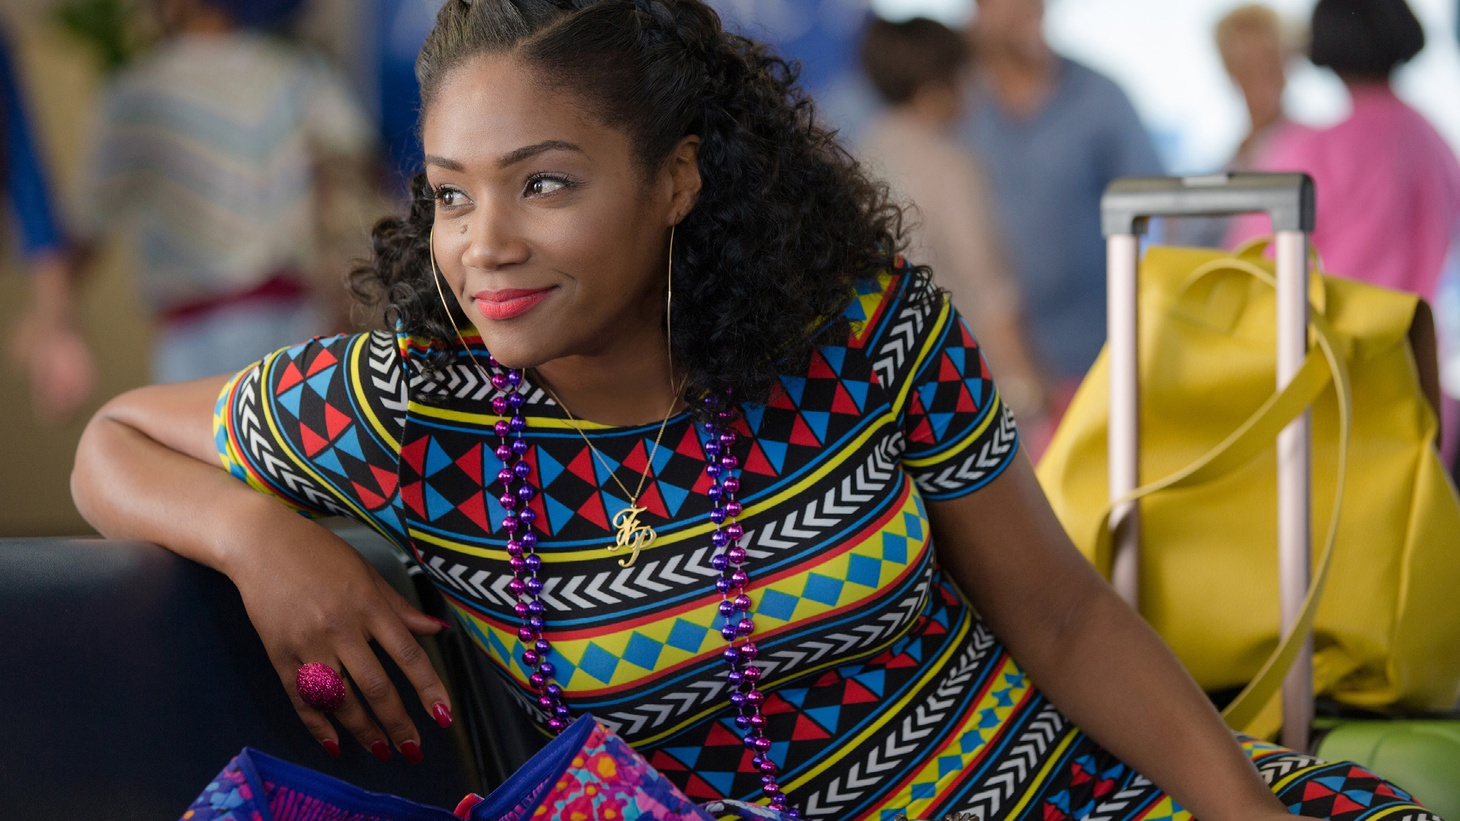 Actress and comedian Tiffany Haddish is having a star-is-born moment with the raunchy comedy Girls Trip. Haddish says the movie has already changed her life, and she has big plans for where her career goes from here. Haddish and Girls Trip director Malcolm D. Lee tell us about filming during the actual Essence Festival and yes, a certain scene involving a grapefruit.